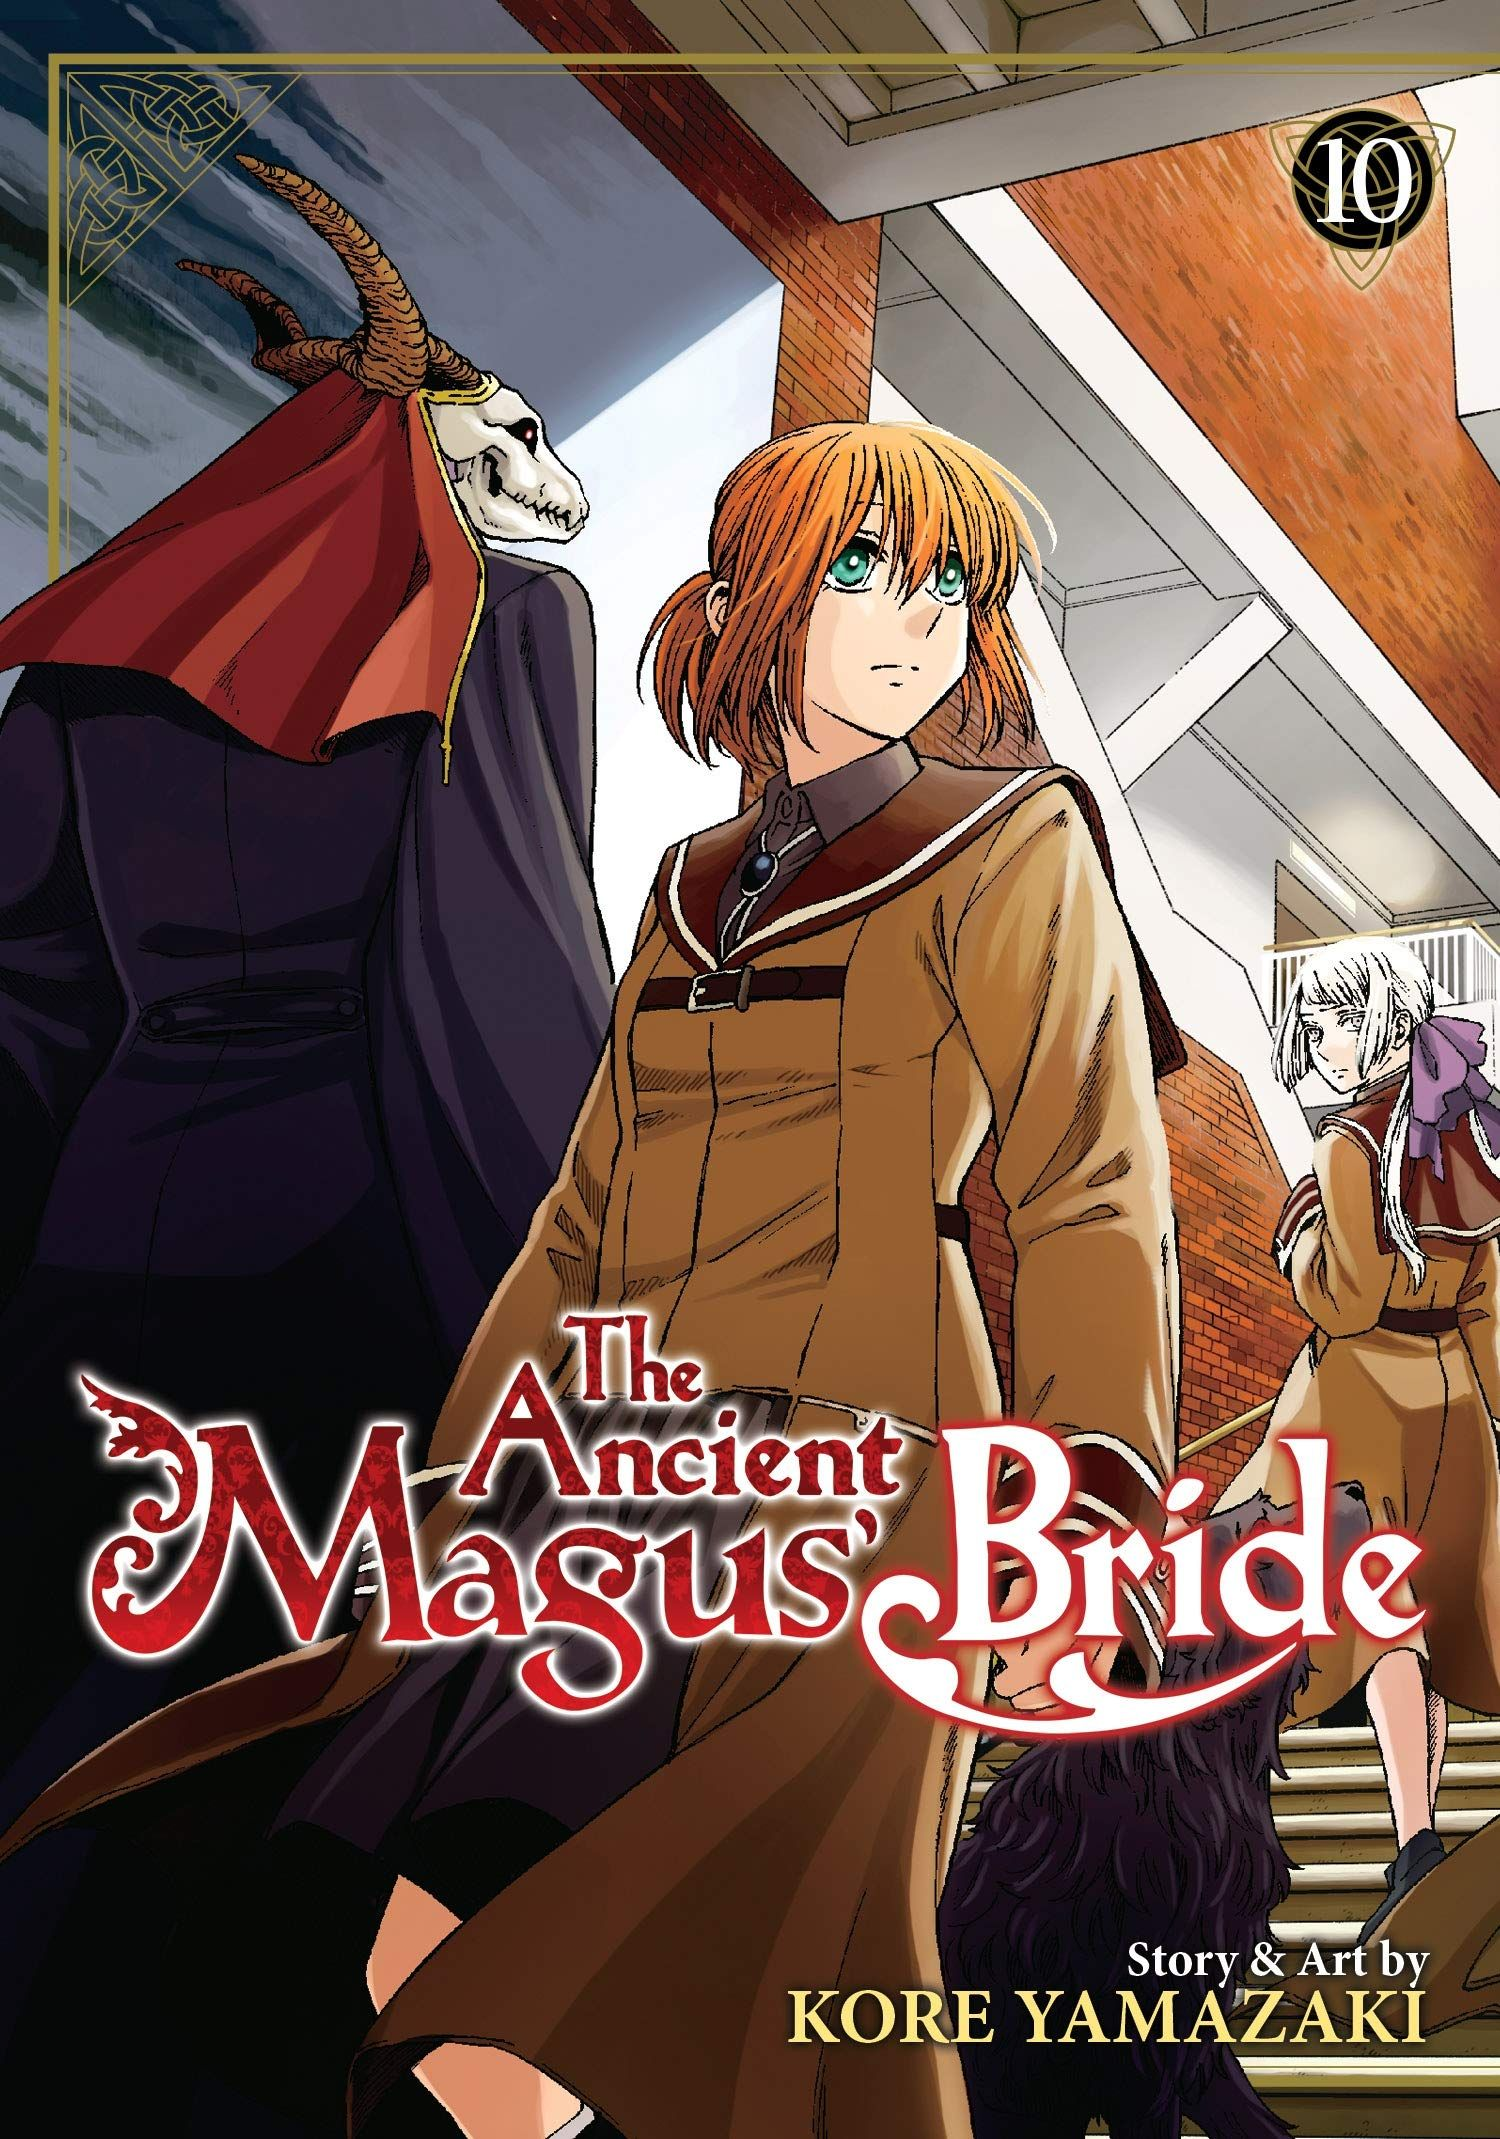 The Ancient Magus Bride Vol 10 Paperback February 26 2019